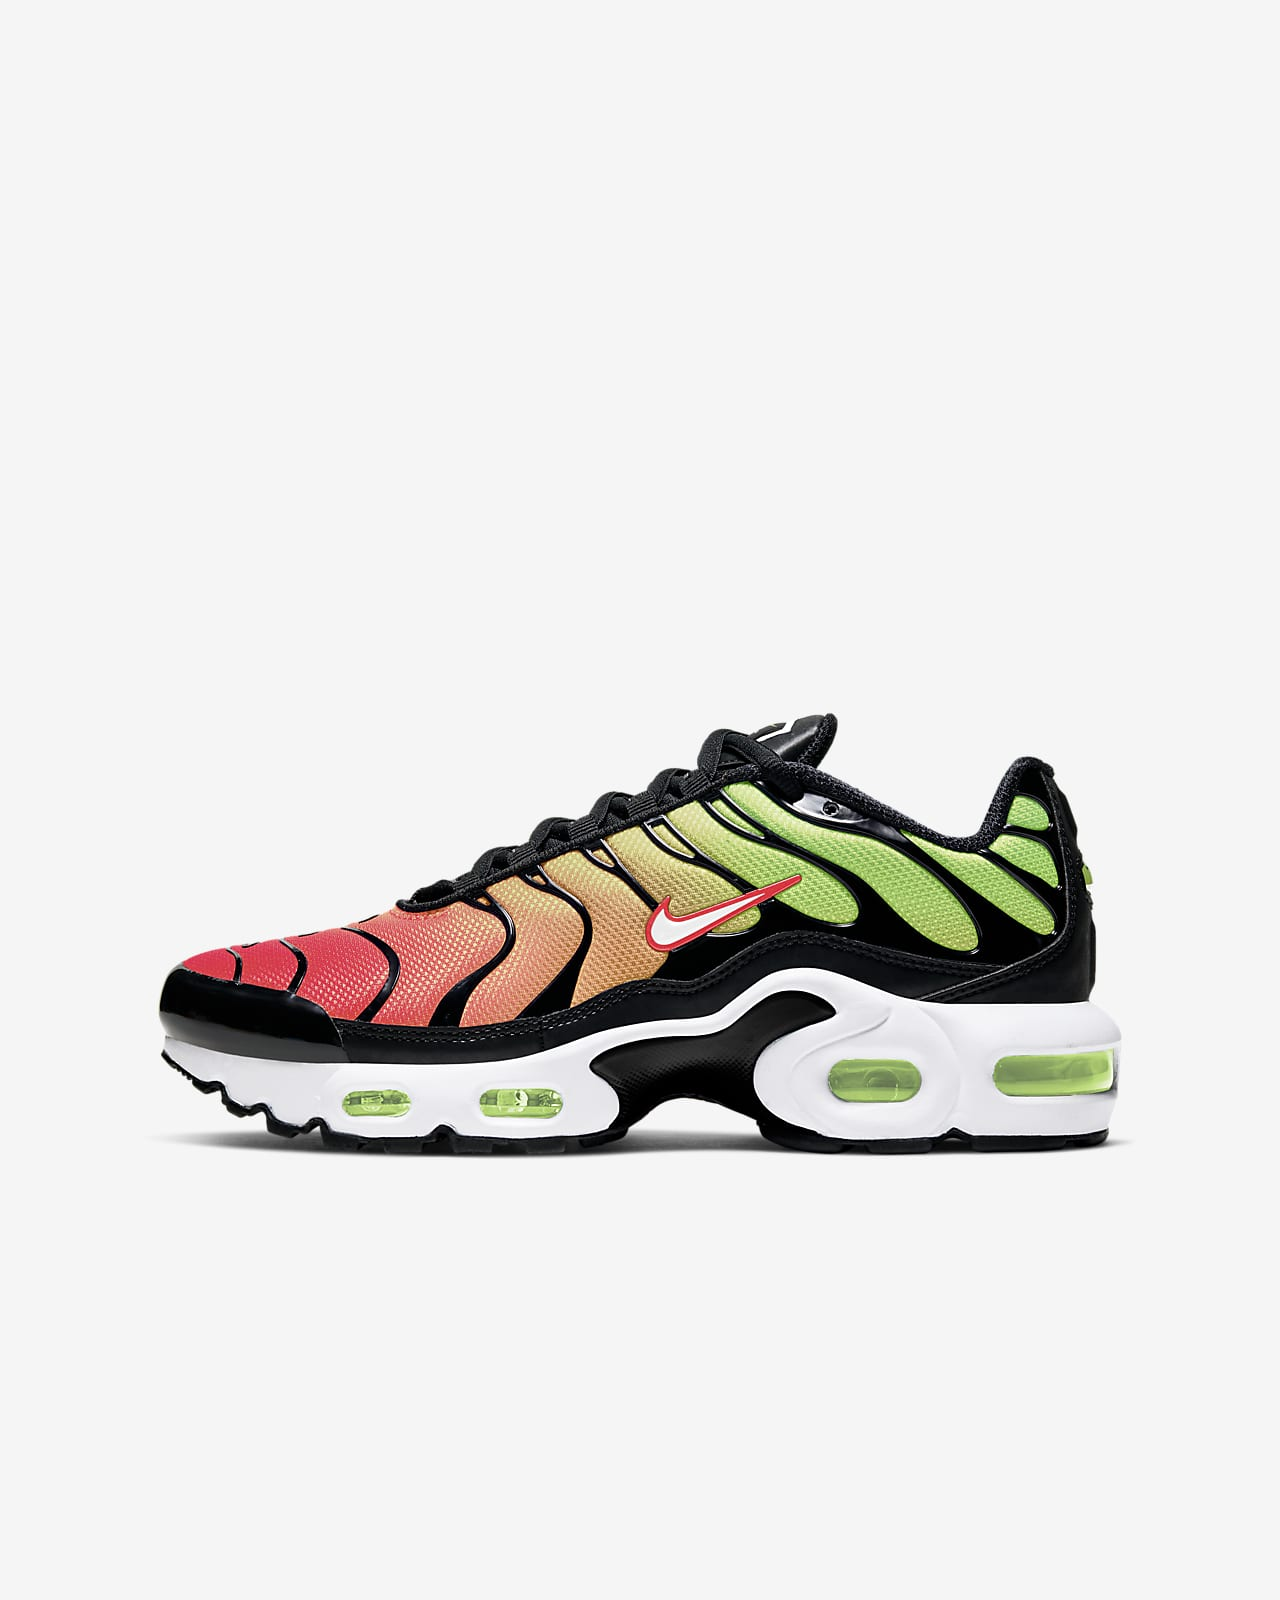 Nike Air Max Plus sko til store barn